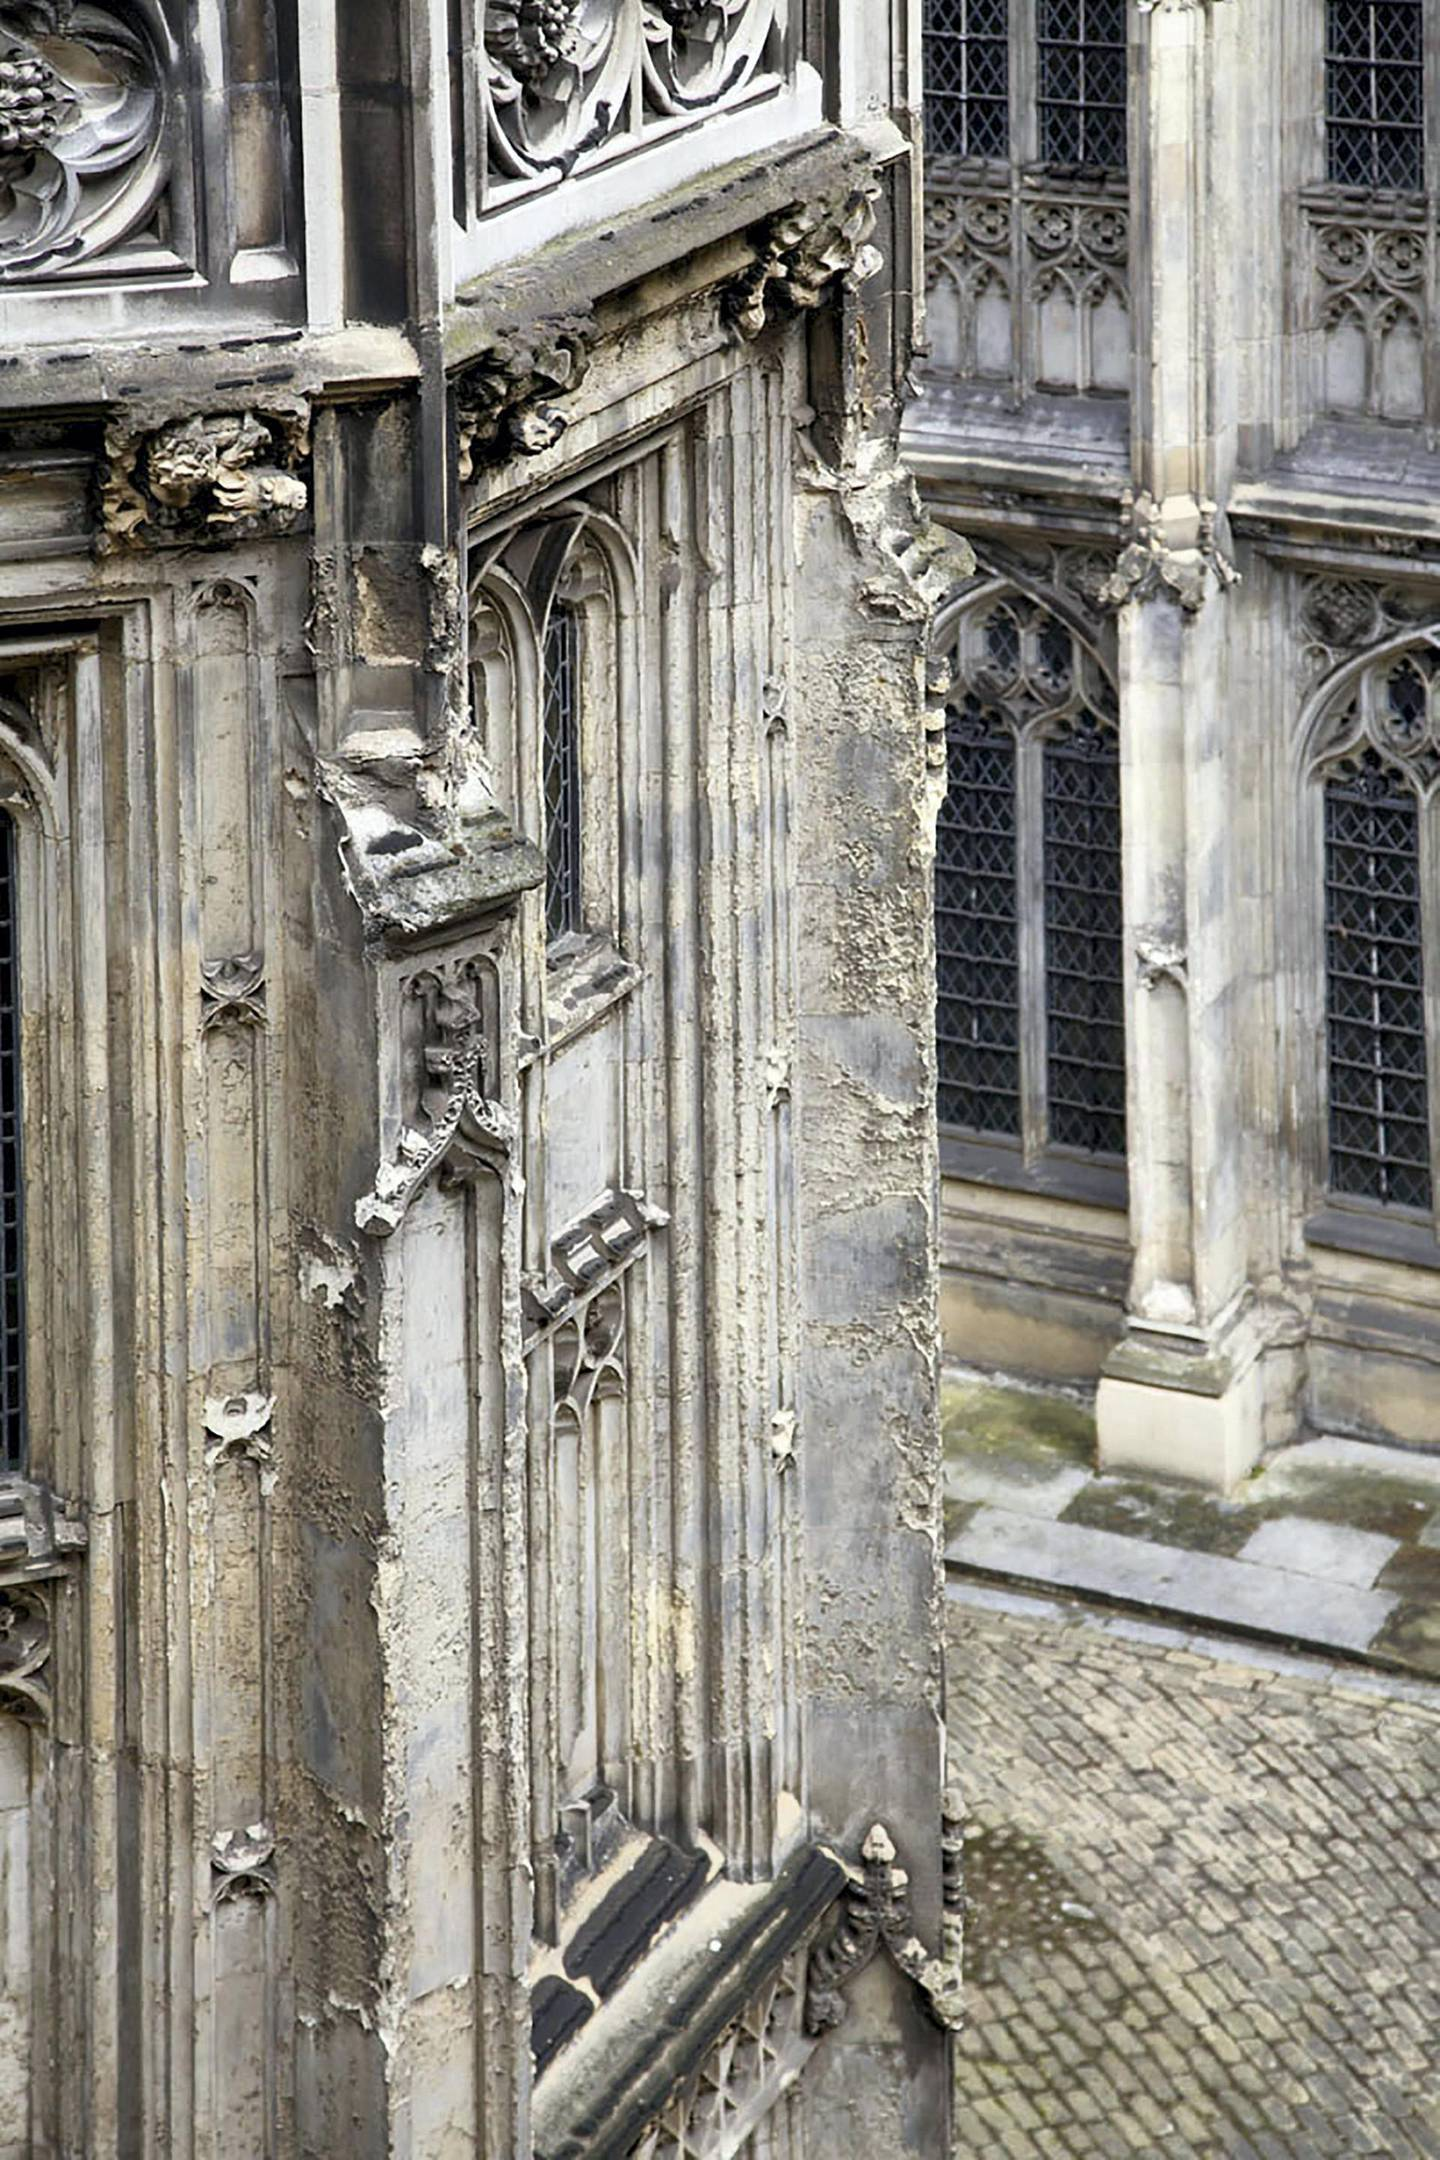 """A handout picture released by the UK Parliament on January 30, 2018 and taken on April 24, 2014 shows a view of general dilapidation of exterior stonework in Cloister Court at the Palace of Westminster in Londonin 2014. British lawmakers were set to deabte the proposed restoration of the Palace of Westminster, the historic palace that houses the UK Houses of Parliament. A parliamentary report published in 2016 recommended that lawmakers should move out of the crumbling building while it is renovated to avert a crisis. Behind its neo-Gothic facades topped by the world-famous Big Ben clock tower, the mother of parliaments has been eroded by air pollution, overrun with mice and crumbling, prompting warnings it may have to be permanently abandoned unless urgent renovations are carried out costing billions of pounds.  / AFP PHOTO / UK PARLIAMENT / HO / RESTRICTED TO EDITORIAL USE - MANDATORY CREDIT  """" AFP PHOTO / UK PARLIAMENT """"  -  NO MARKETING NO ADVERTISING CAMPAIGNS   -  DISTRIBUTED AS A SERVICE TO CLIENTS SPECIFICALLY TO ILLUSTRATE THE AFP STORY BY JOE JACKSON DATED JAN 31, 2018 -  NO ARCHIVE - RESTRICTED TO SUBSCRIPTION USE - NO SALES - NO USE ON ANY SOCIAL MEDIA PLATFORM - NOT TO BE ADAPTED ALTERED OR MANIPULATED  / TO GO WITH AFP STORY BY JOE JACKSON"""